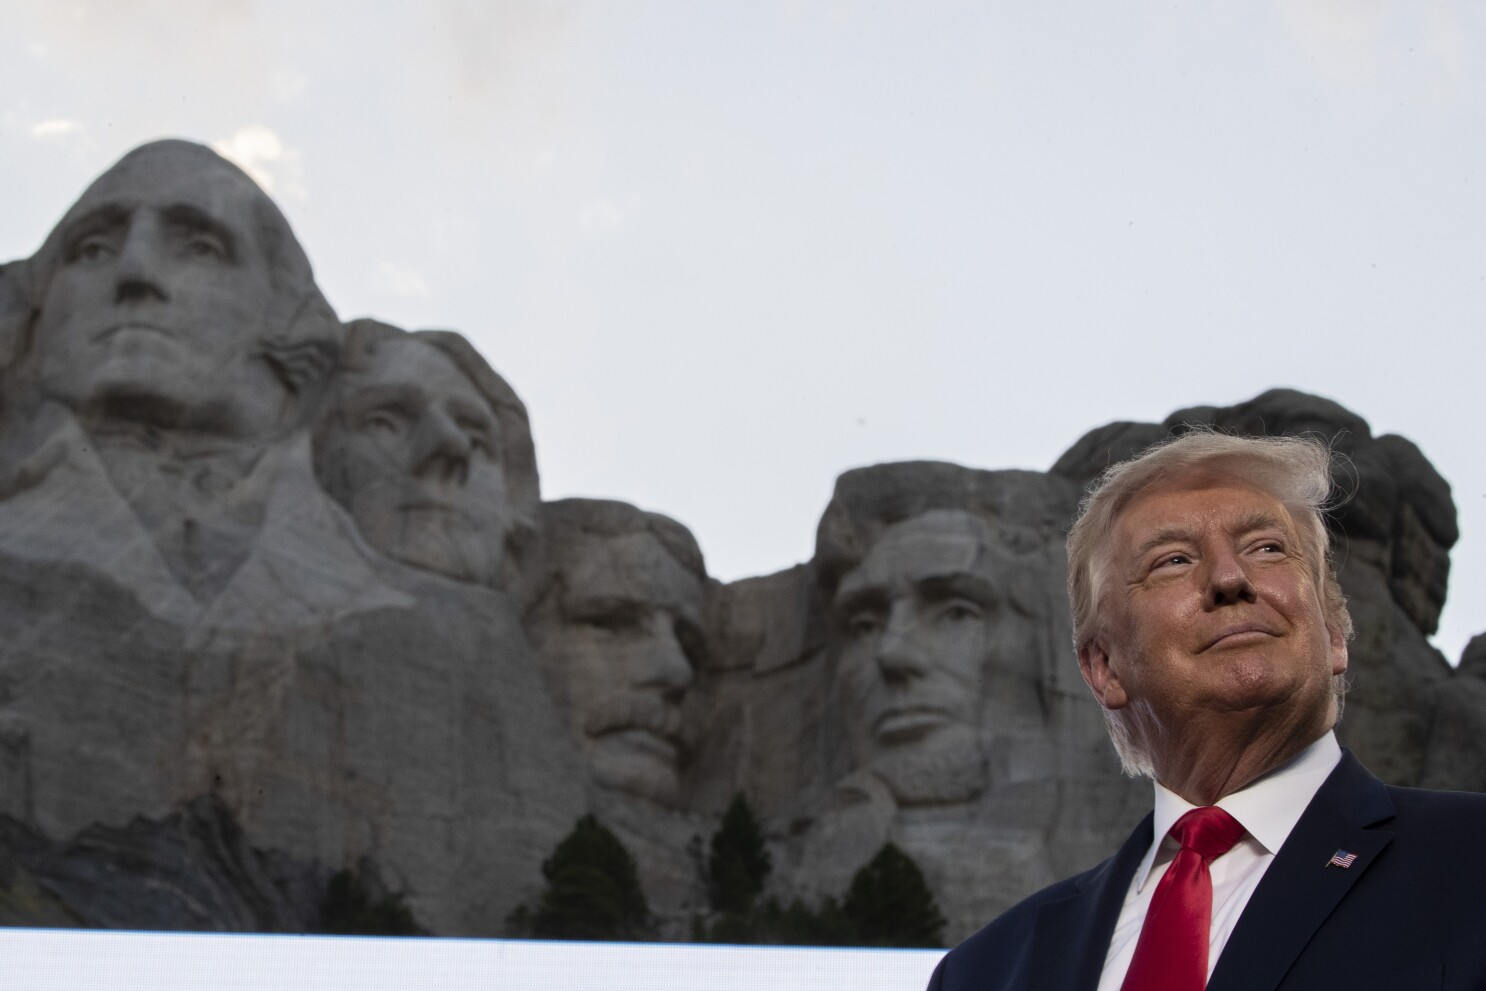 At Mt. Rushmore, Trump uses Fourth of July celebration to stoke a culture  war - Los Angeles Times